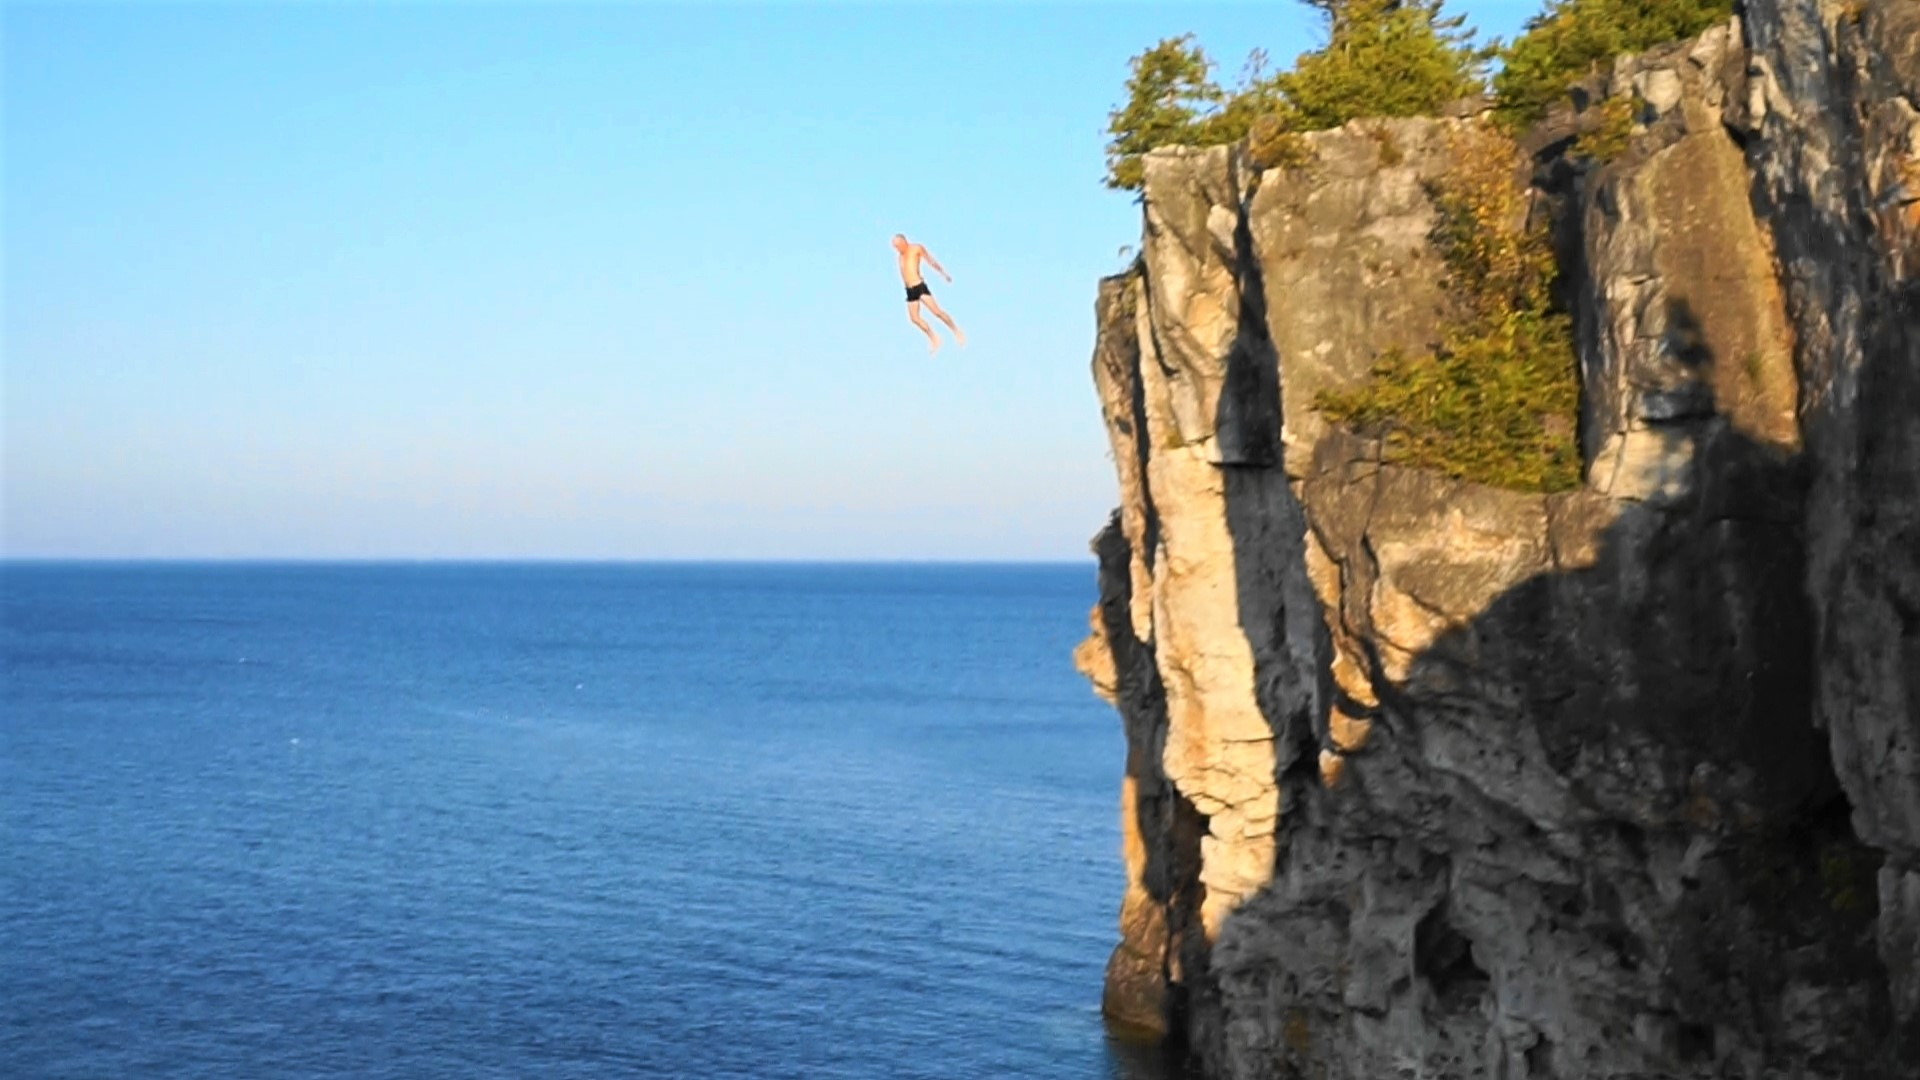 Camping hiking and cliff diving in tobermory jetlag warriors - Highest cliff dive ever ...